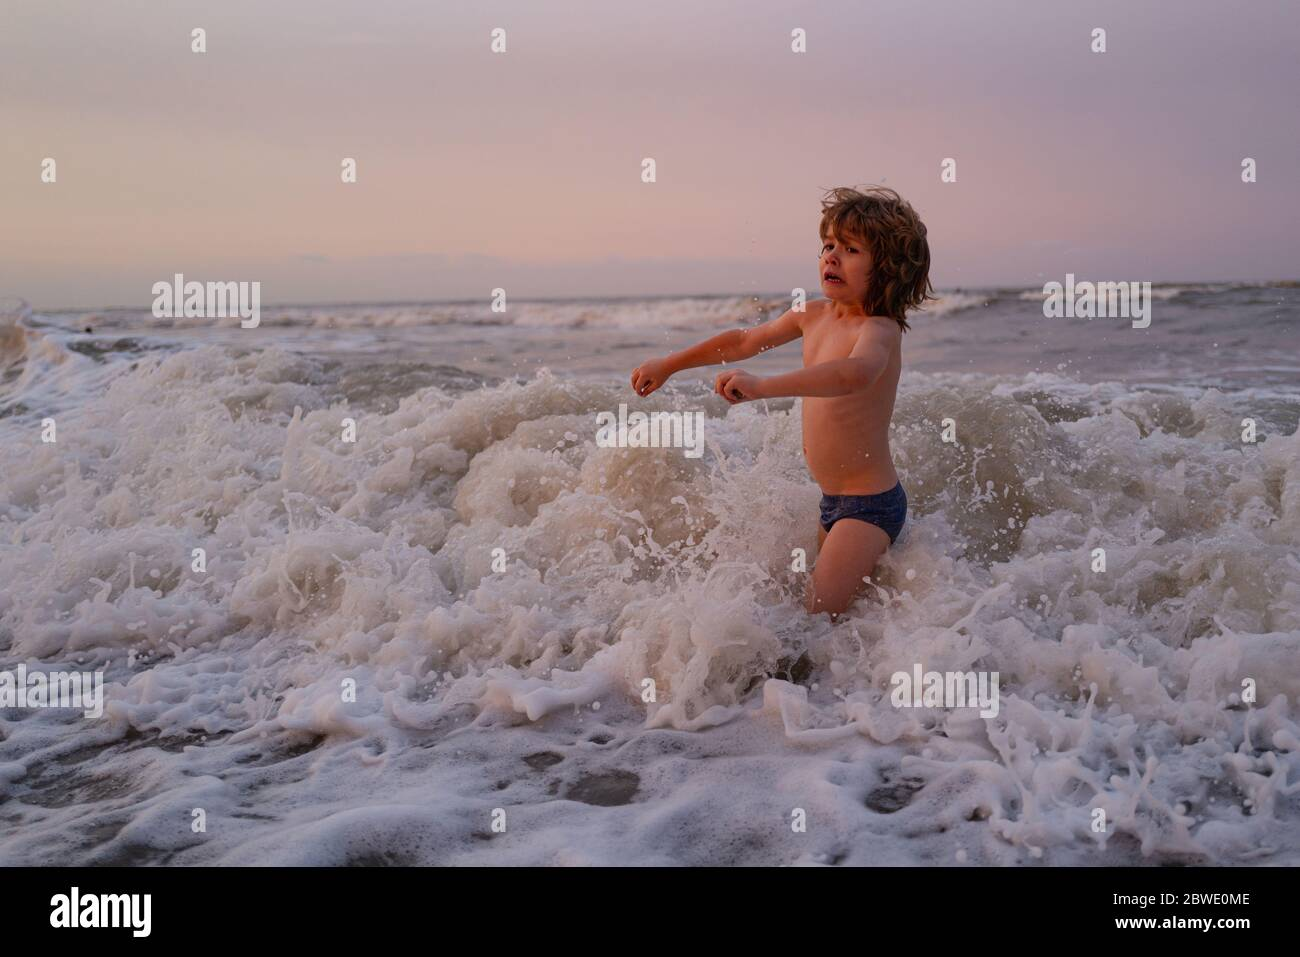 Kids jumping near the waves. Happy kids have fun in sea on beach. Travel lifestyle, swimming activities in family summer camp. Stock Photo